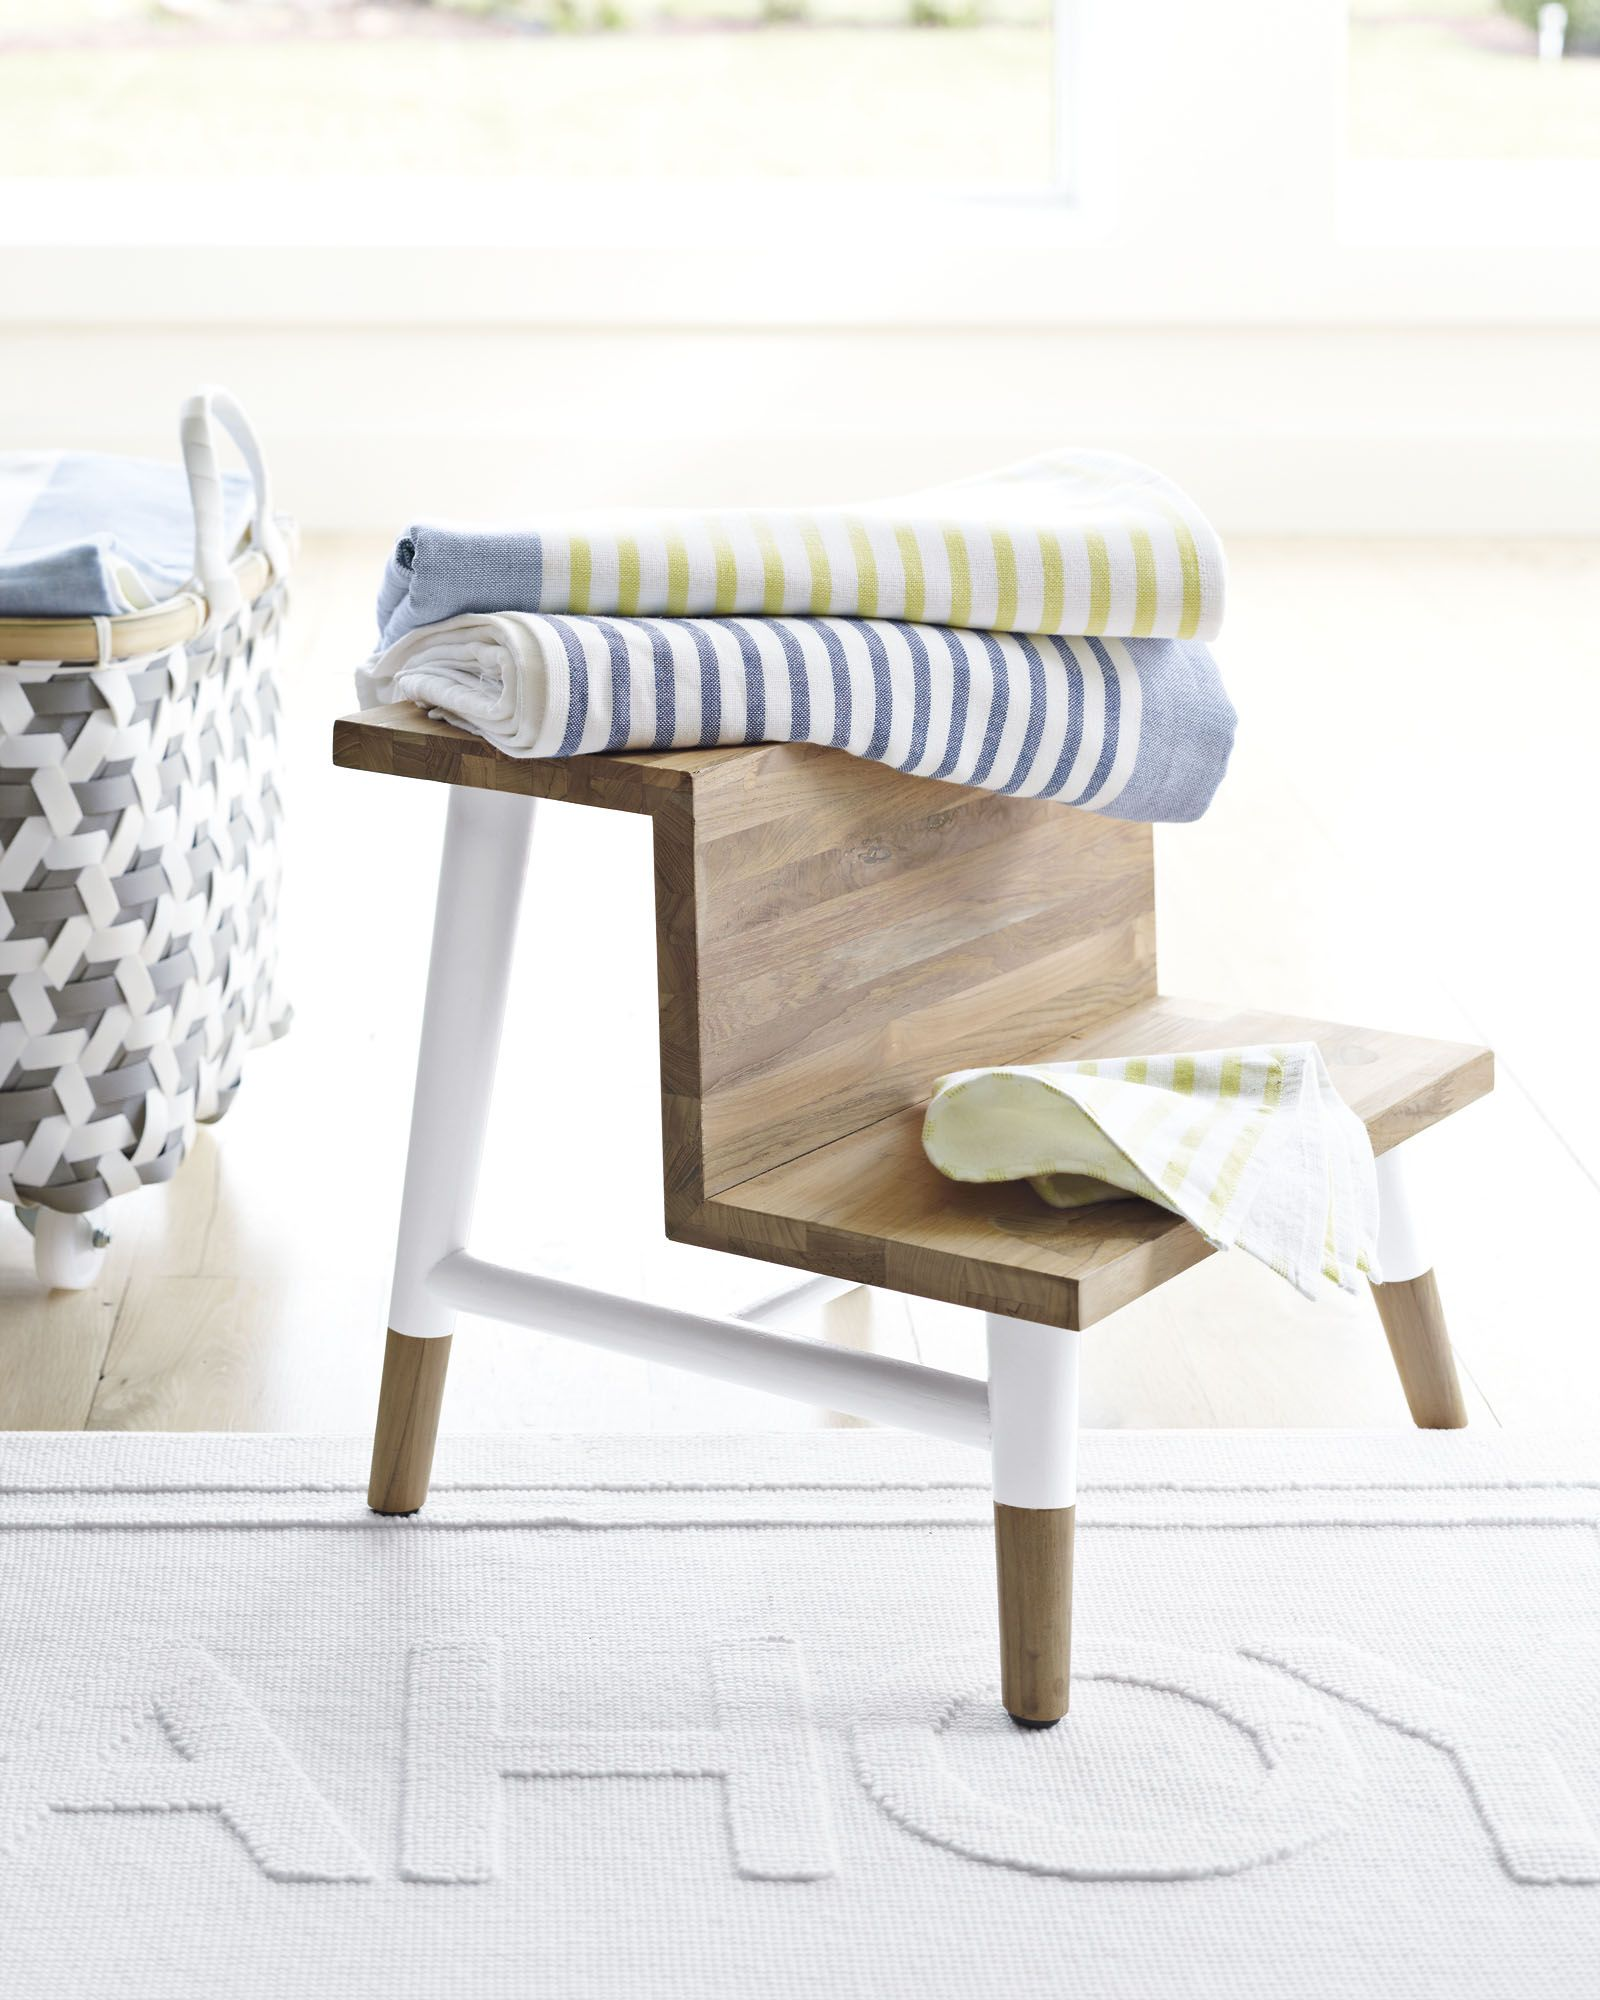 Teak Step StoolTeak Step Stool - Serena and Lily   Products I Love ...